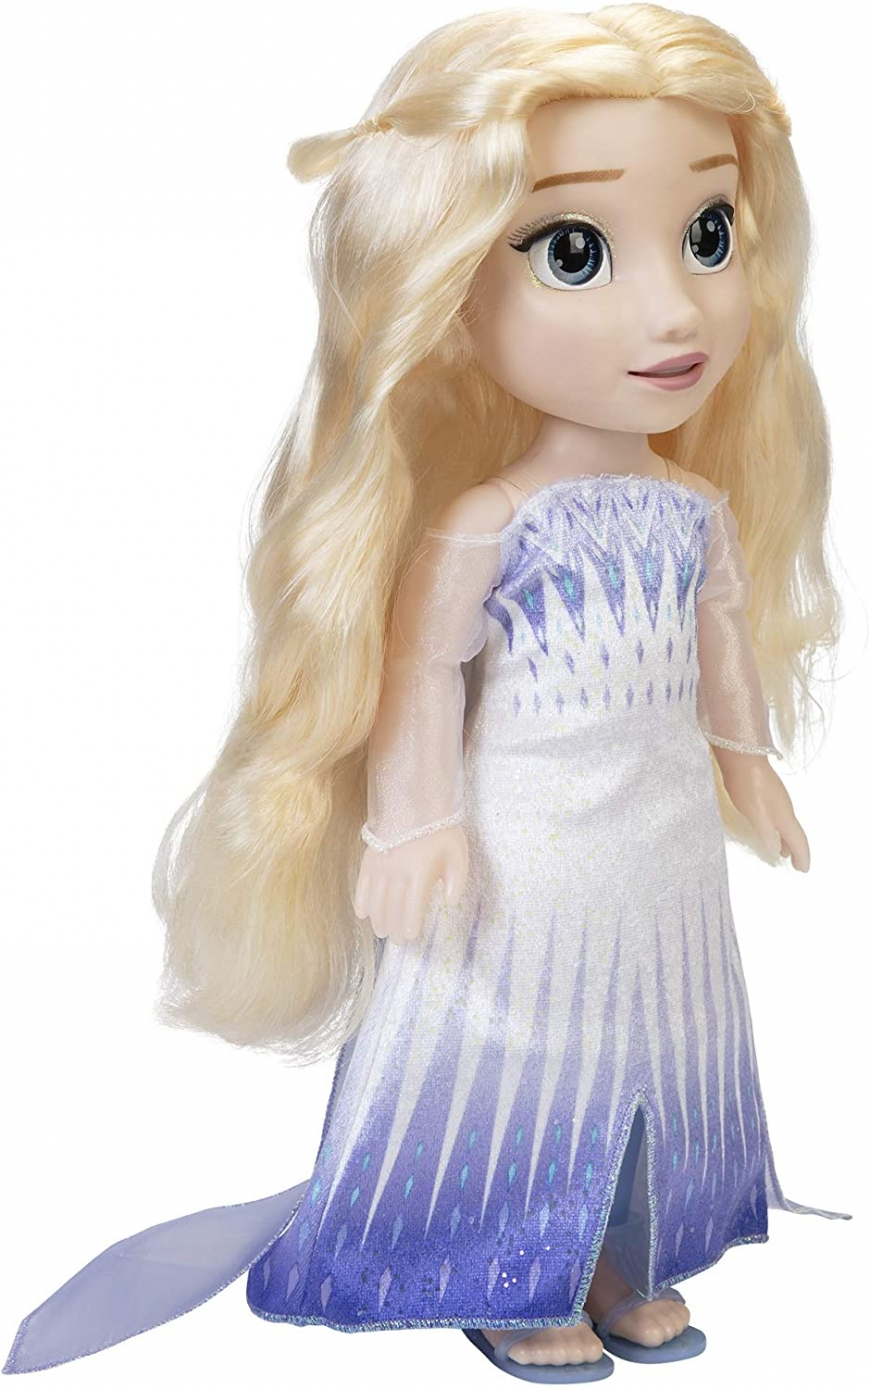 Frozen 2 Magic in Motion Elsa doll. Mouth and head moves while she sings